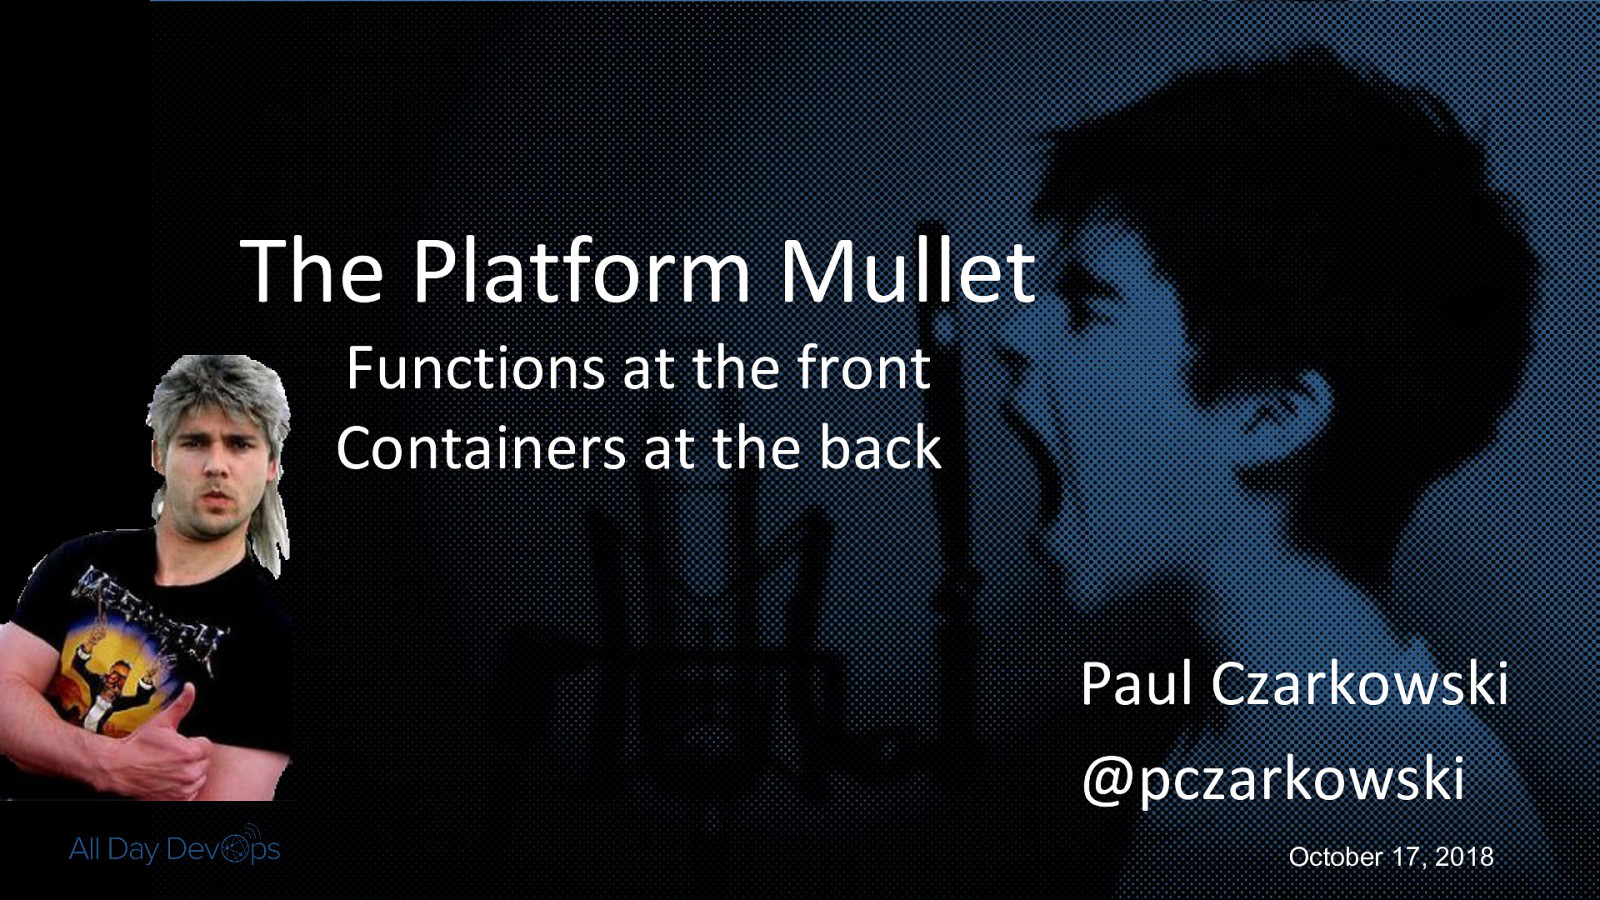 The Cloud Foundry Mullet - Functions at the Front, Containers at the Back